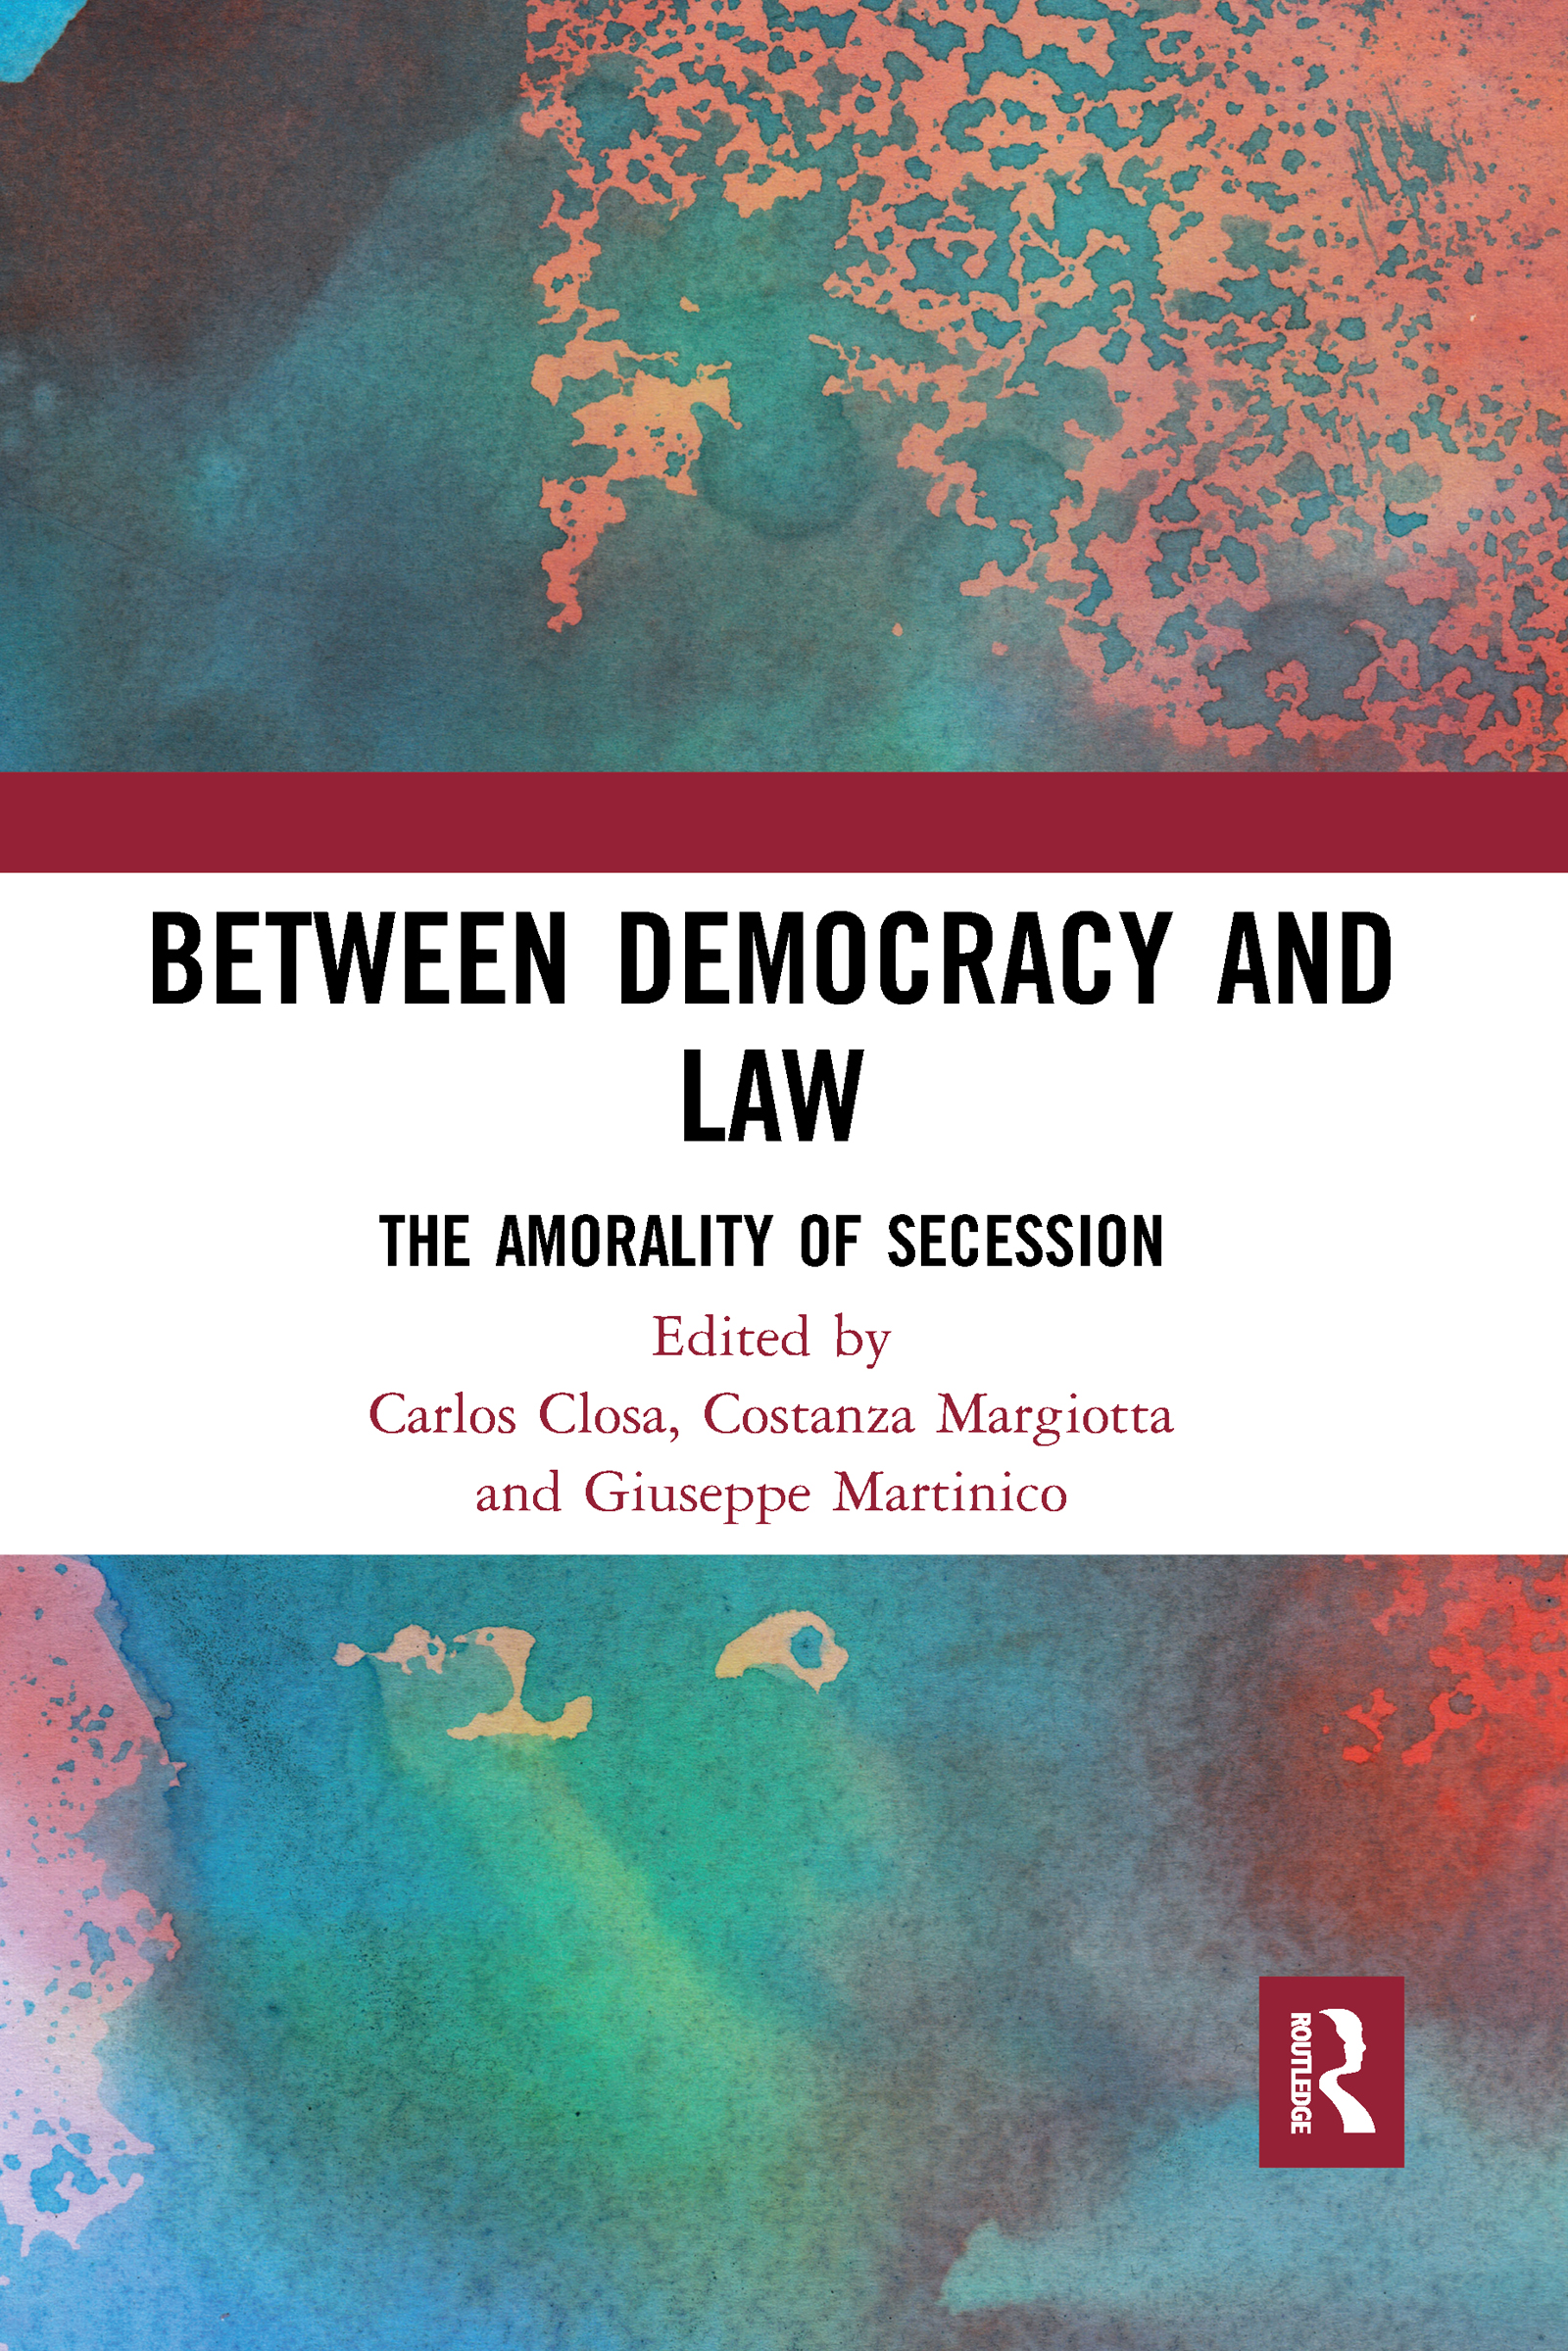 Between Democracy and Law